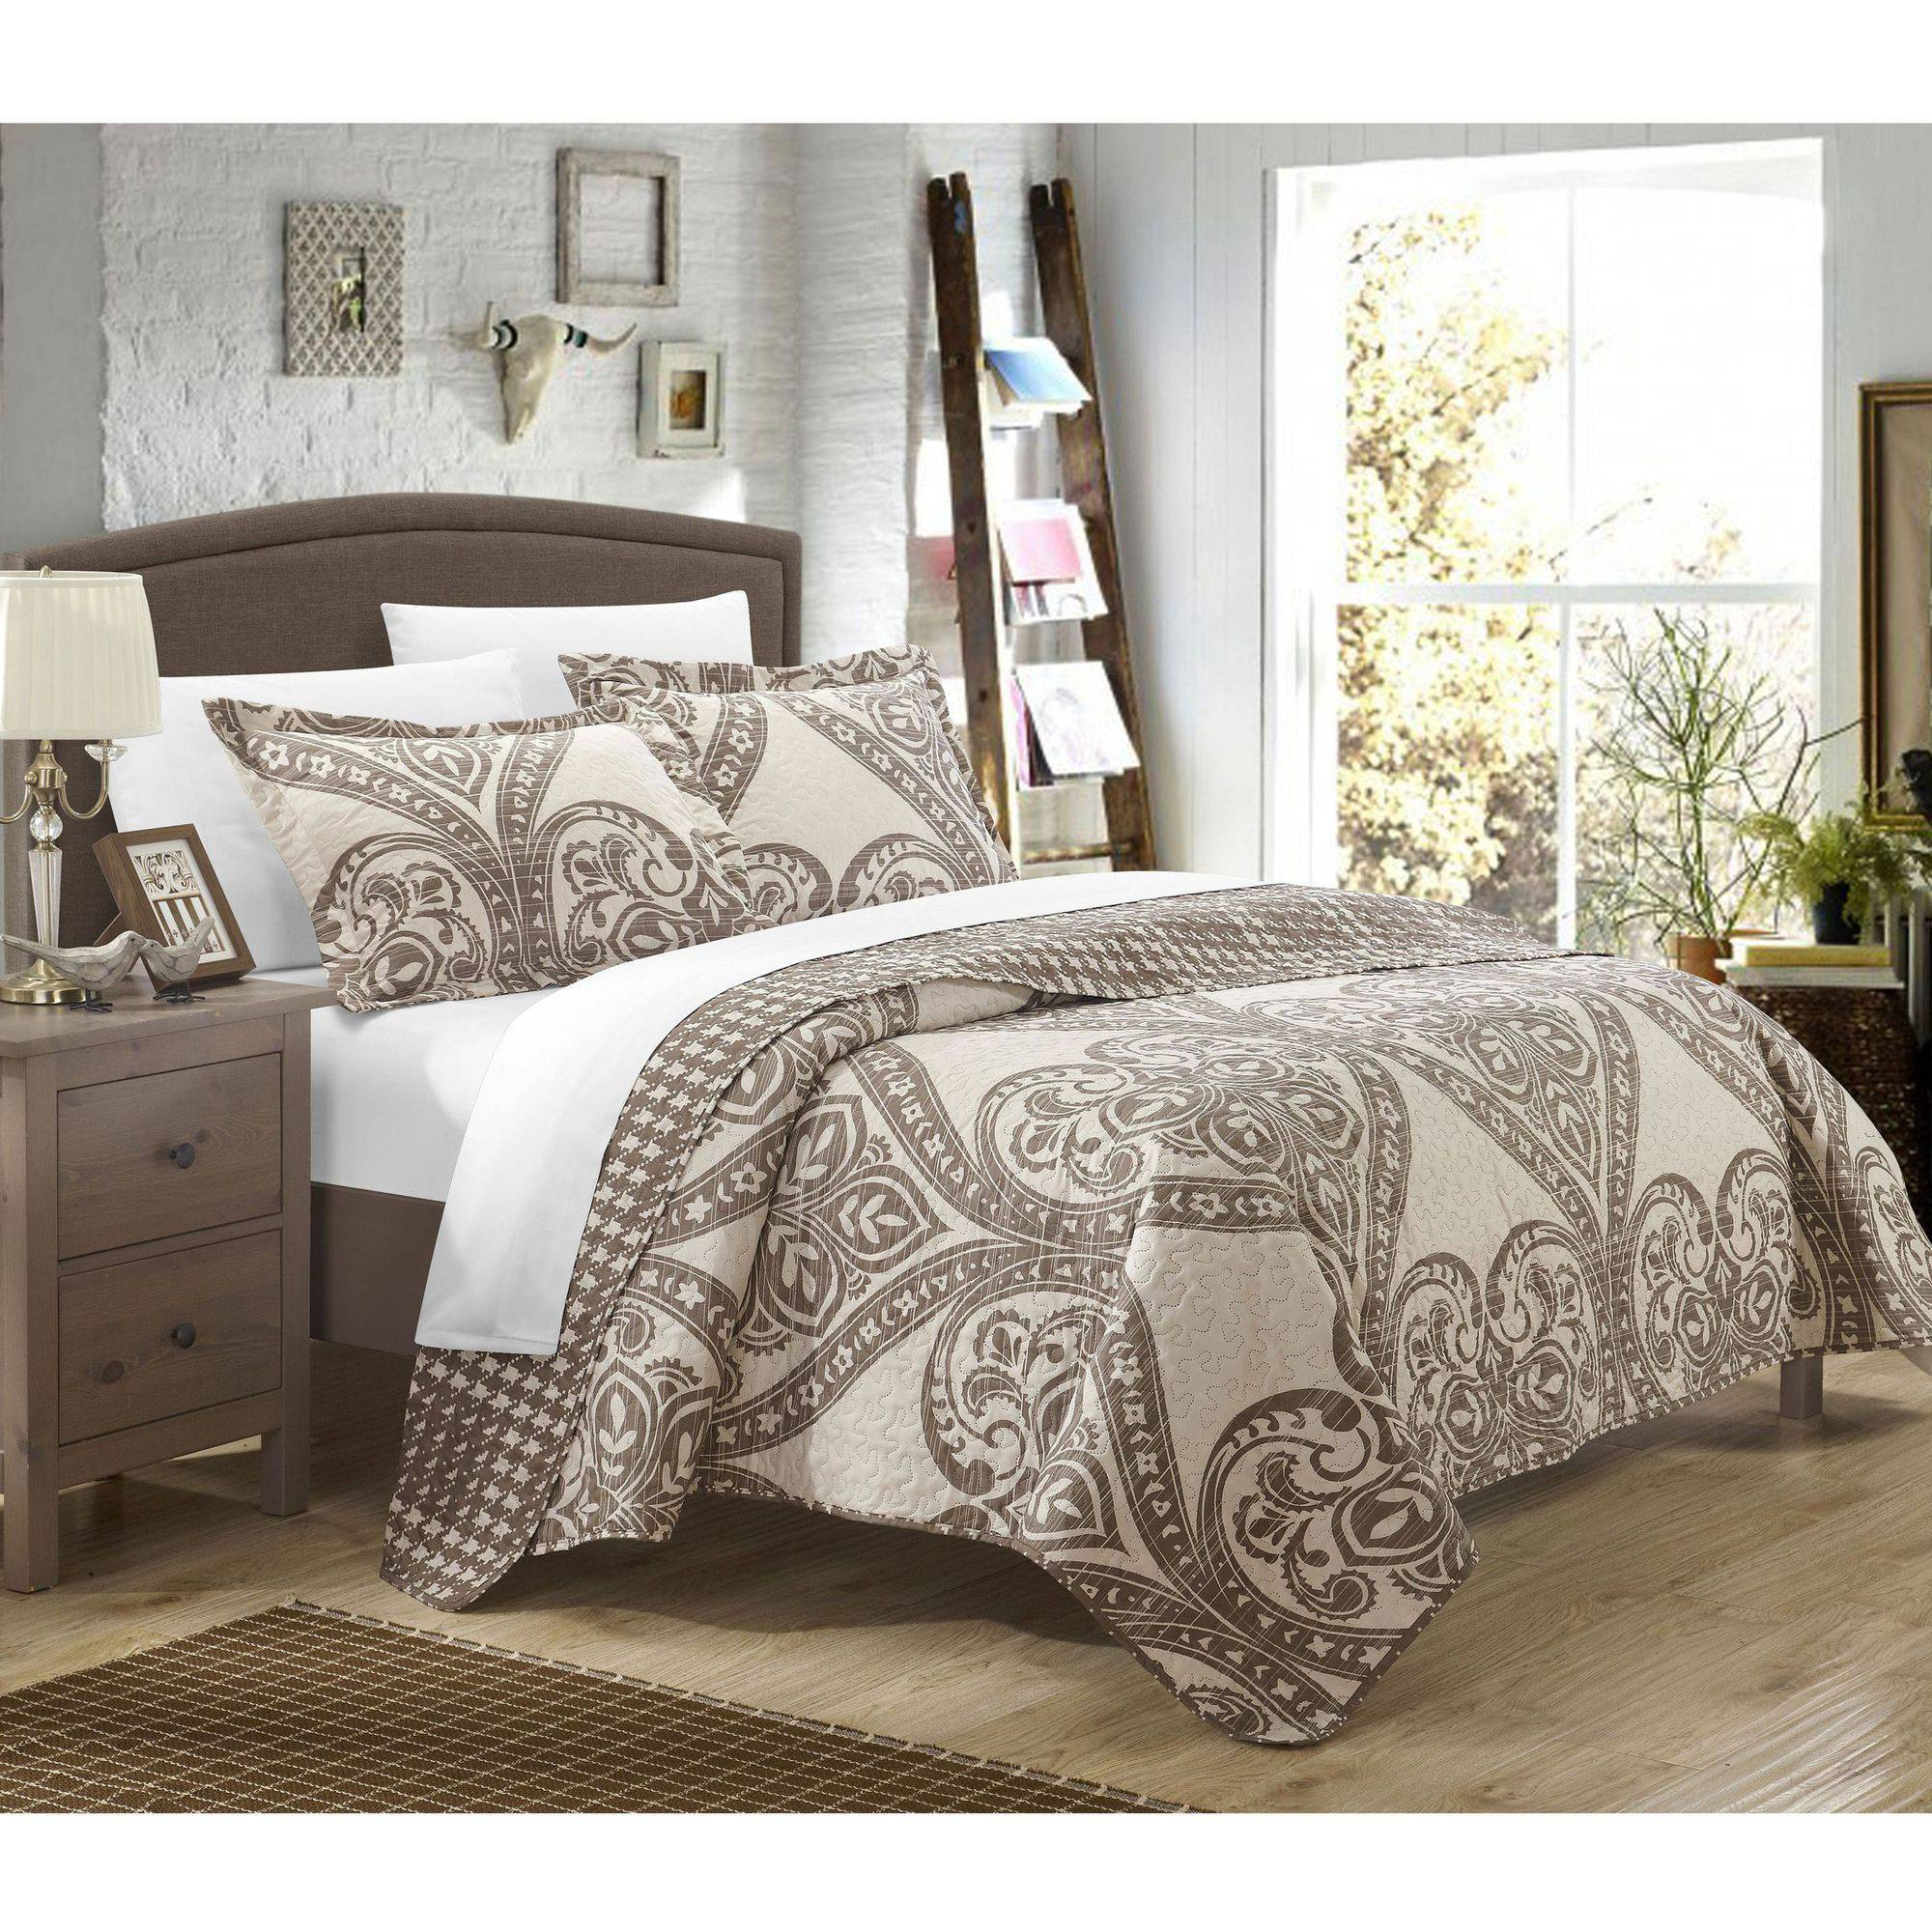 Chic Home 7-Piece Terni Reversible Printed Quilt Set